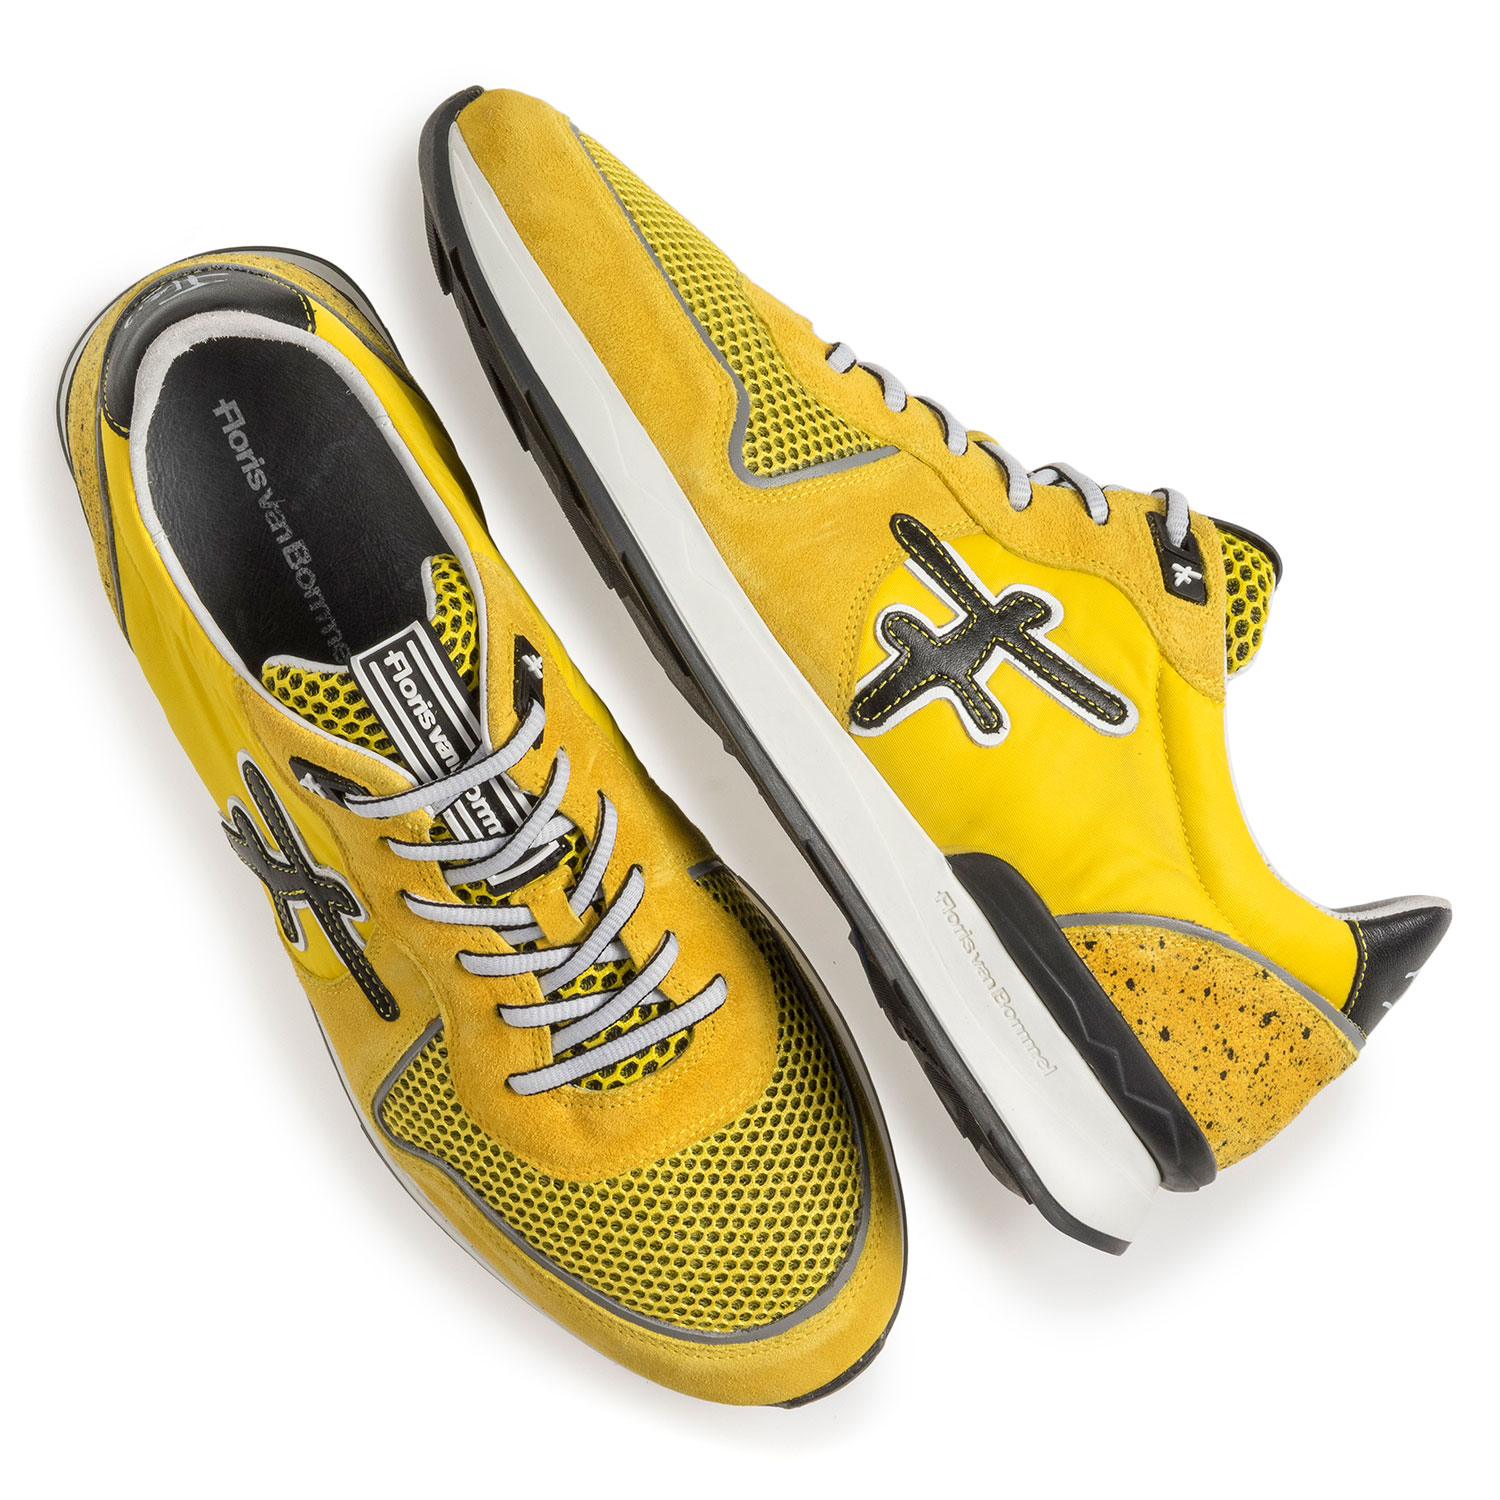 16346/09 - Yellow suede leather sneaker